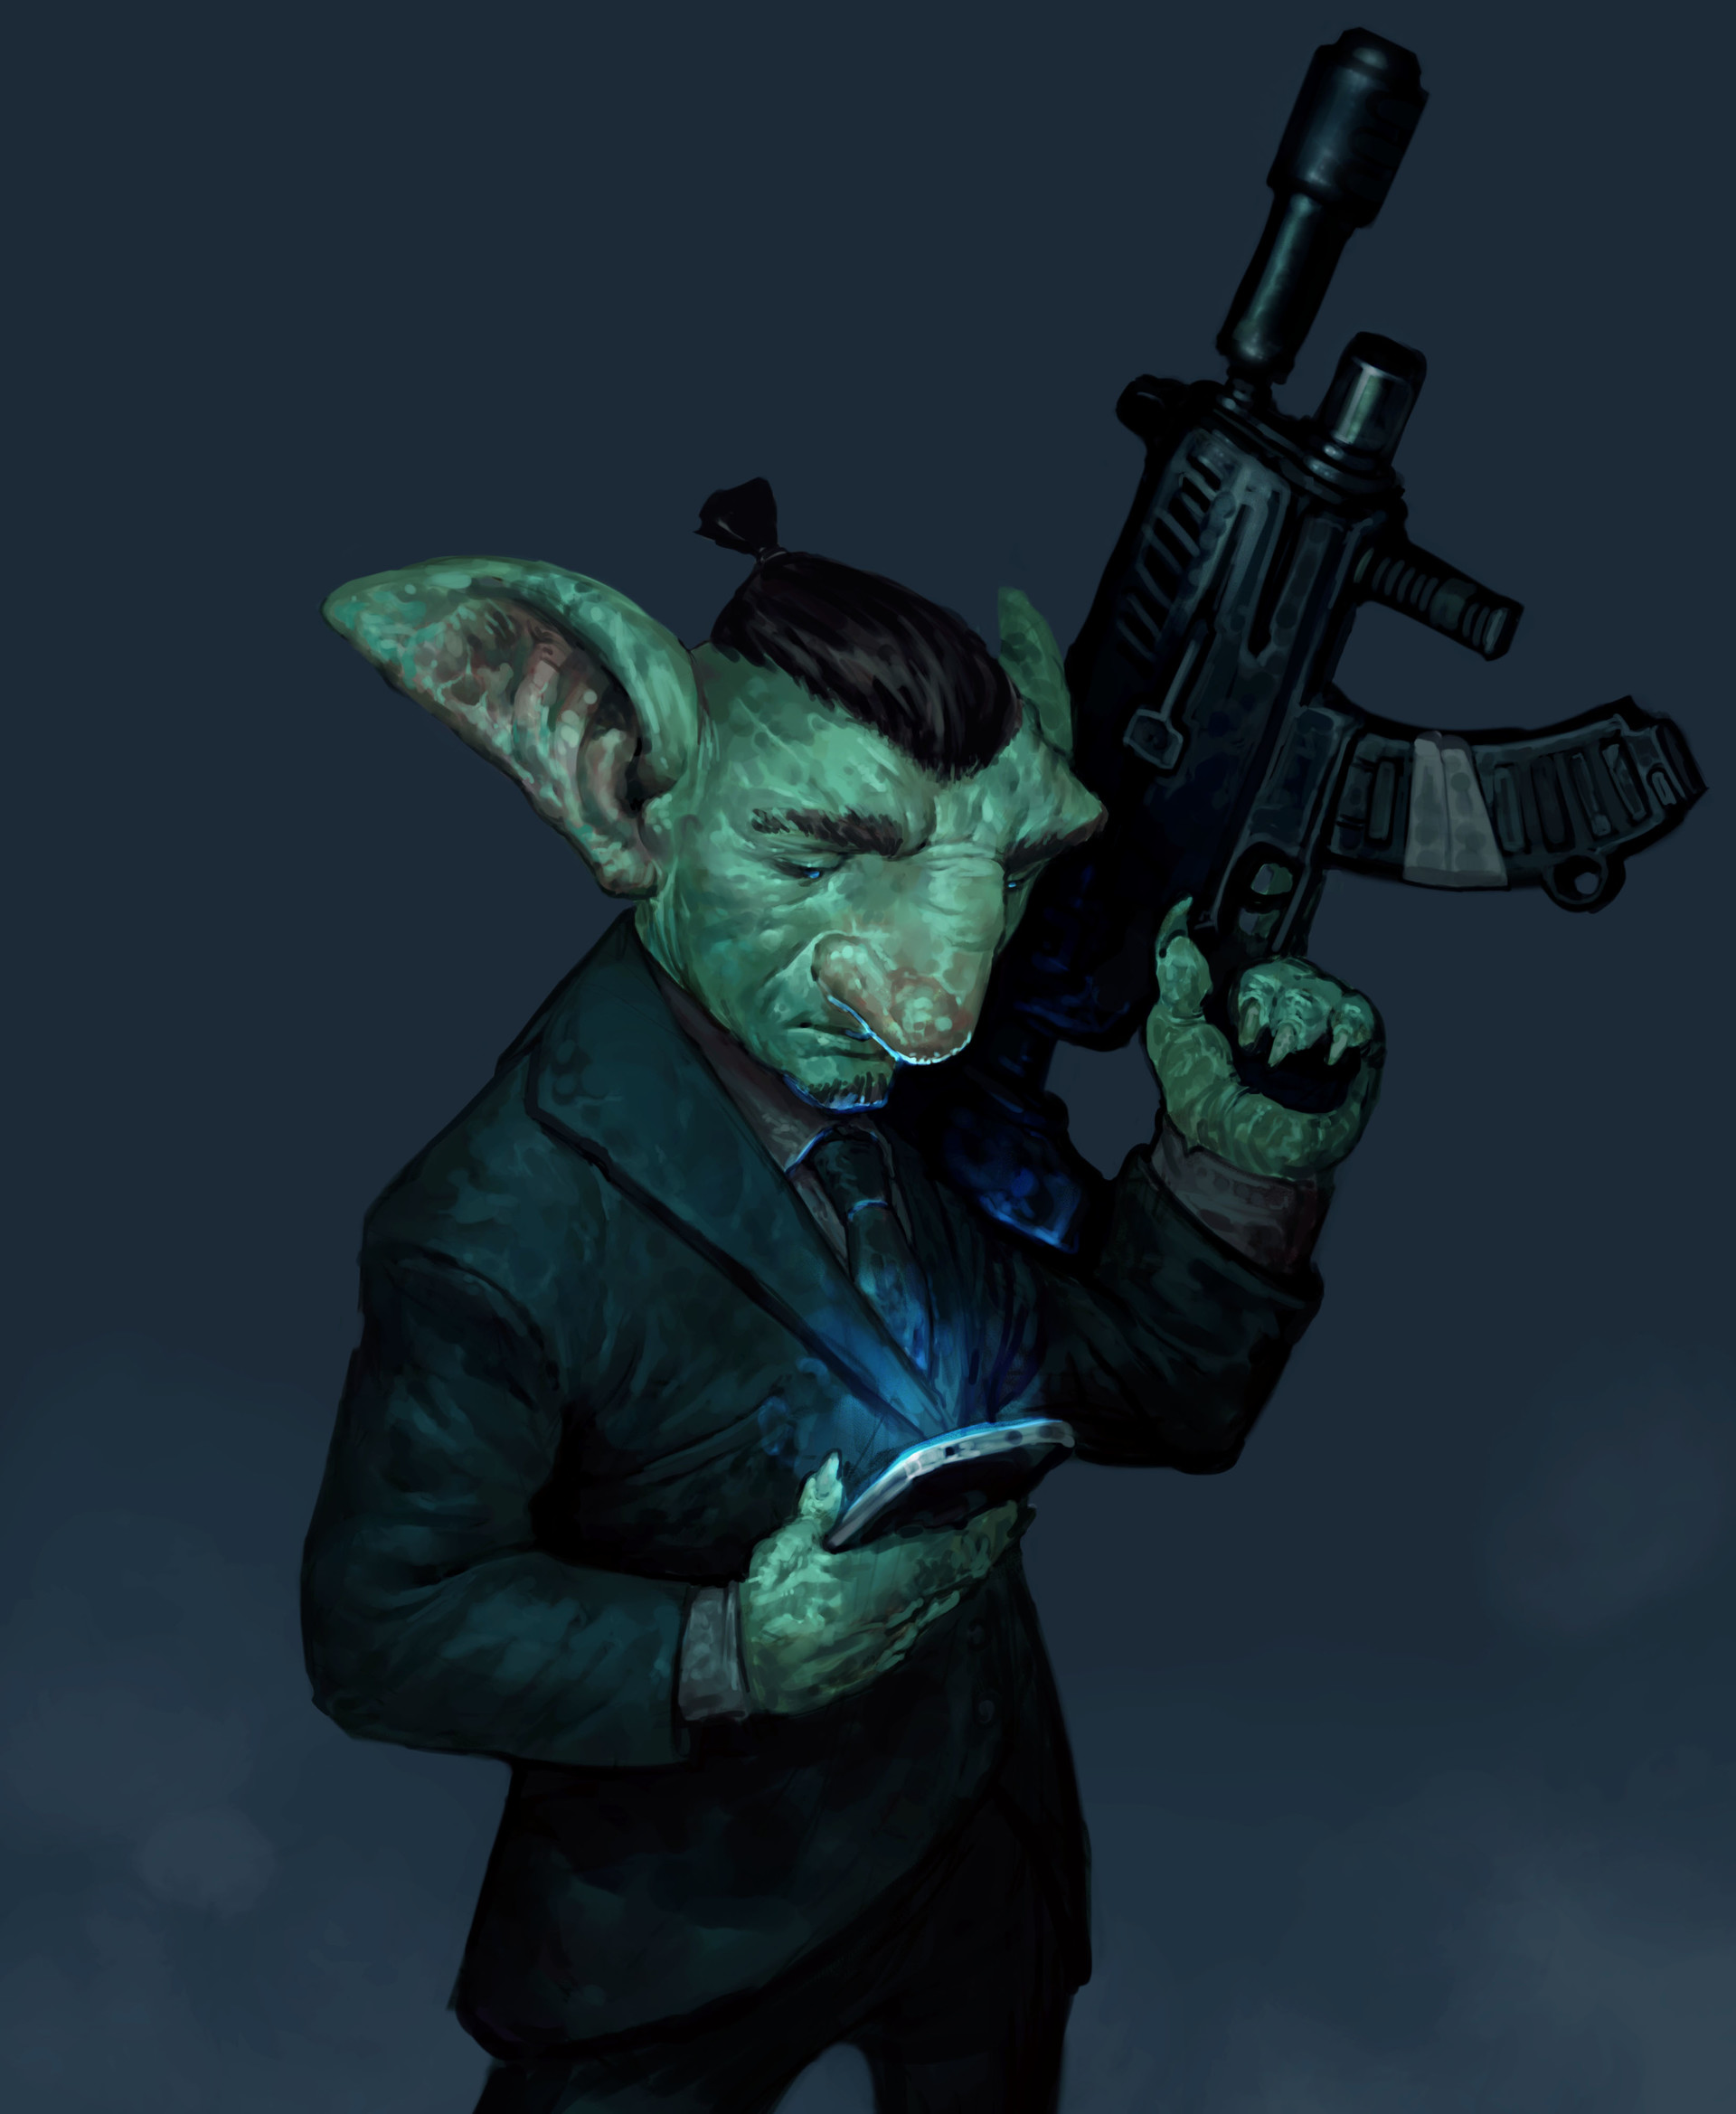 """Goblin inspired by John Wick 2"""